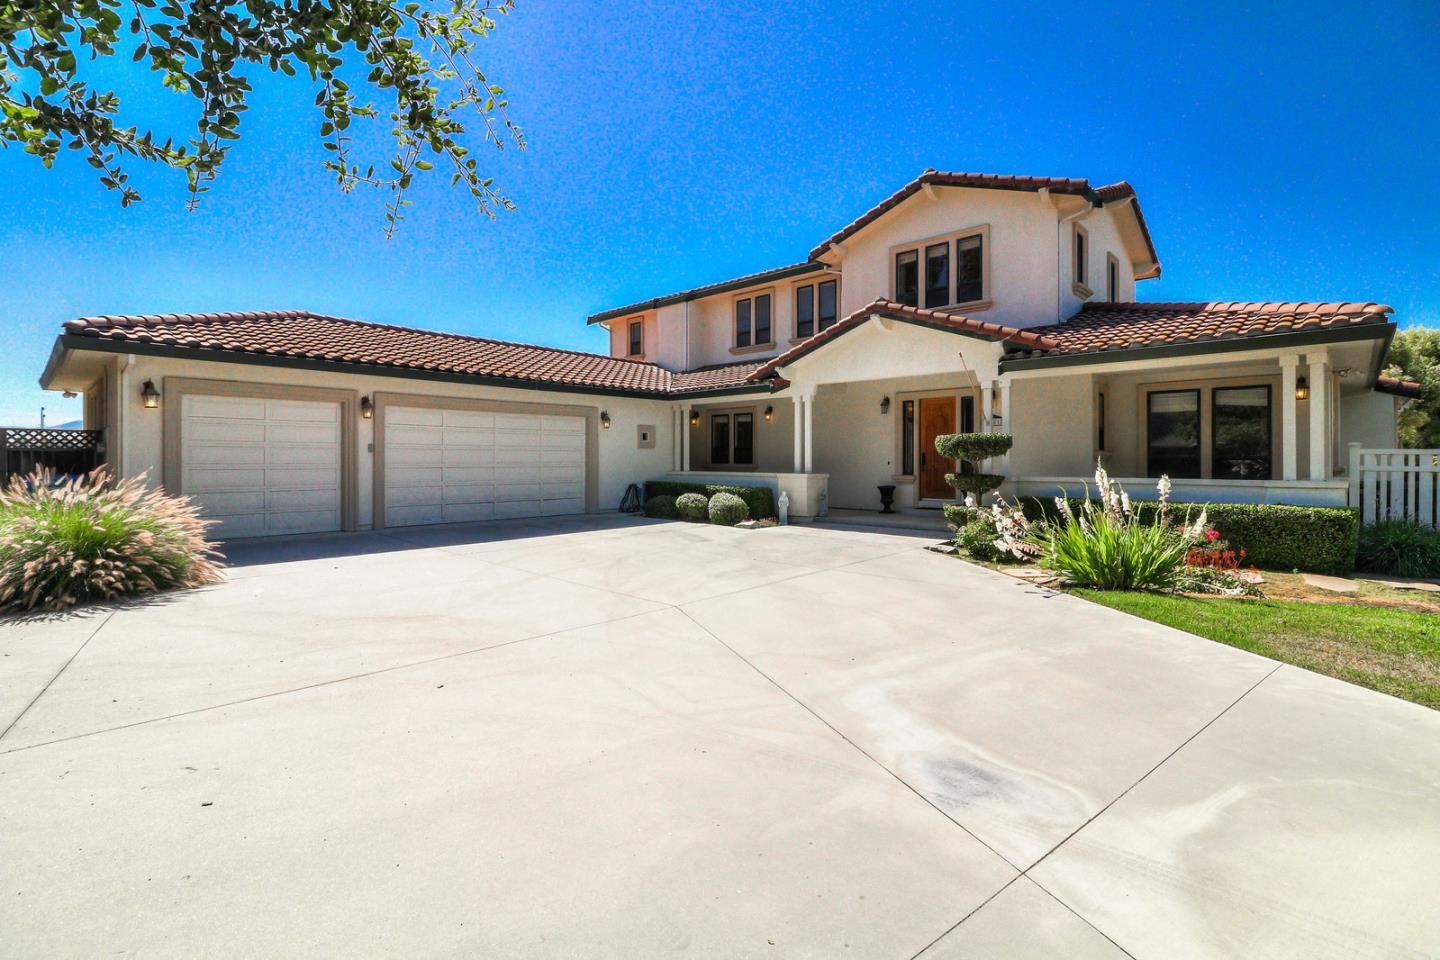 Detail Gallery Image 1 of 65 For 1651 Quail Run, Hollister, CA 95023 - 5 Beds | 2/2 Baths